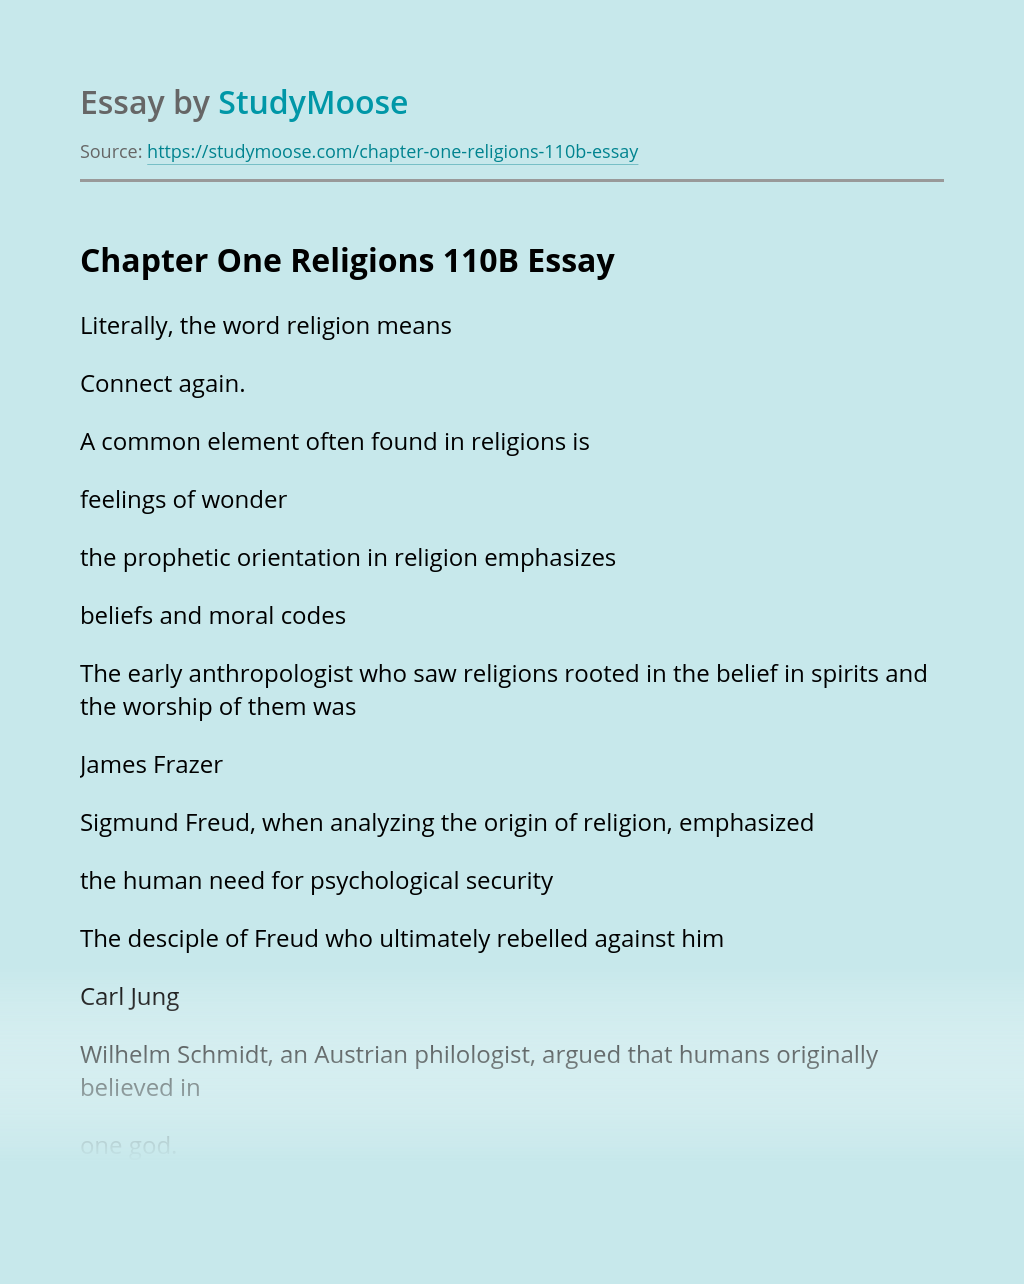 Chapter One Religions 110B